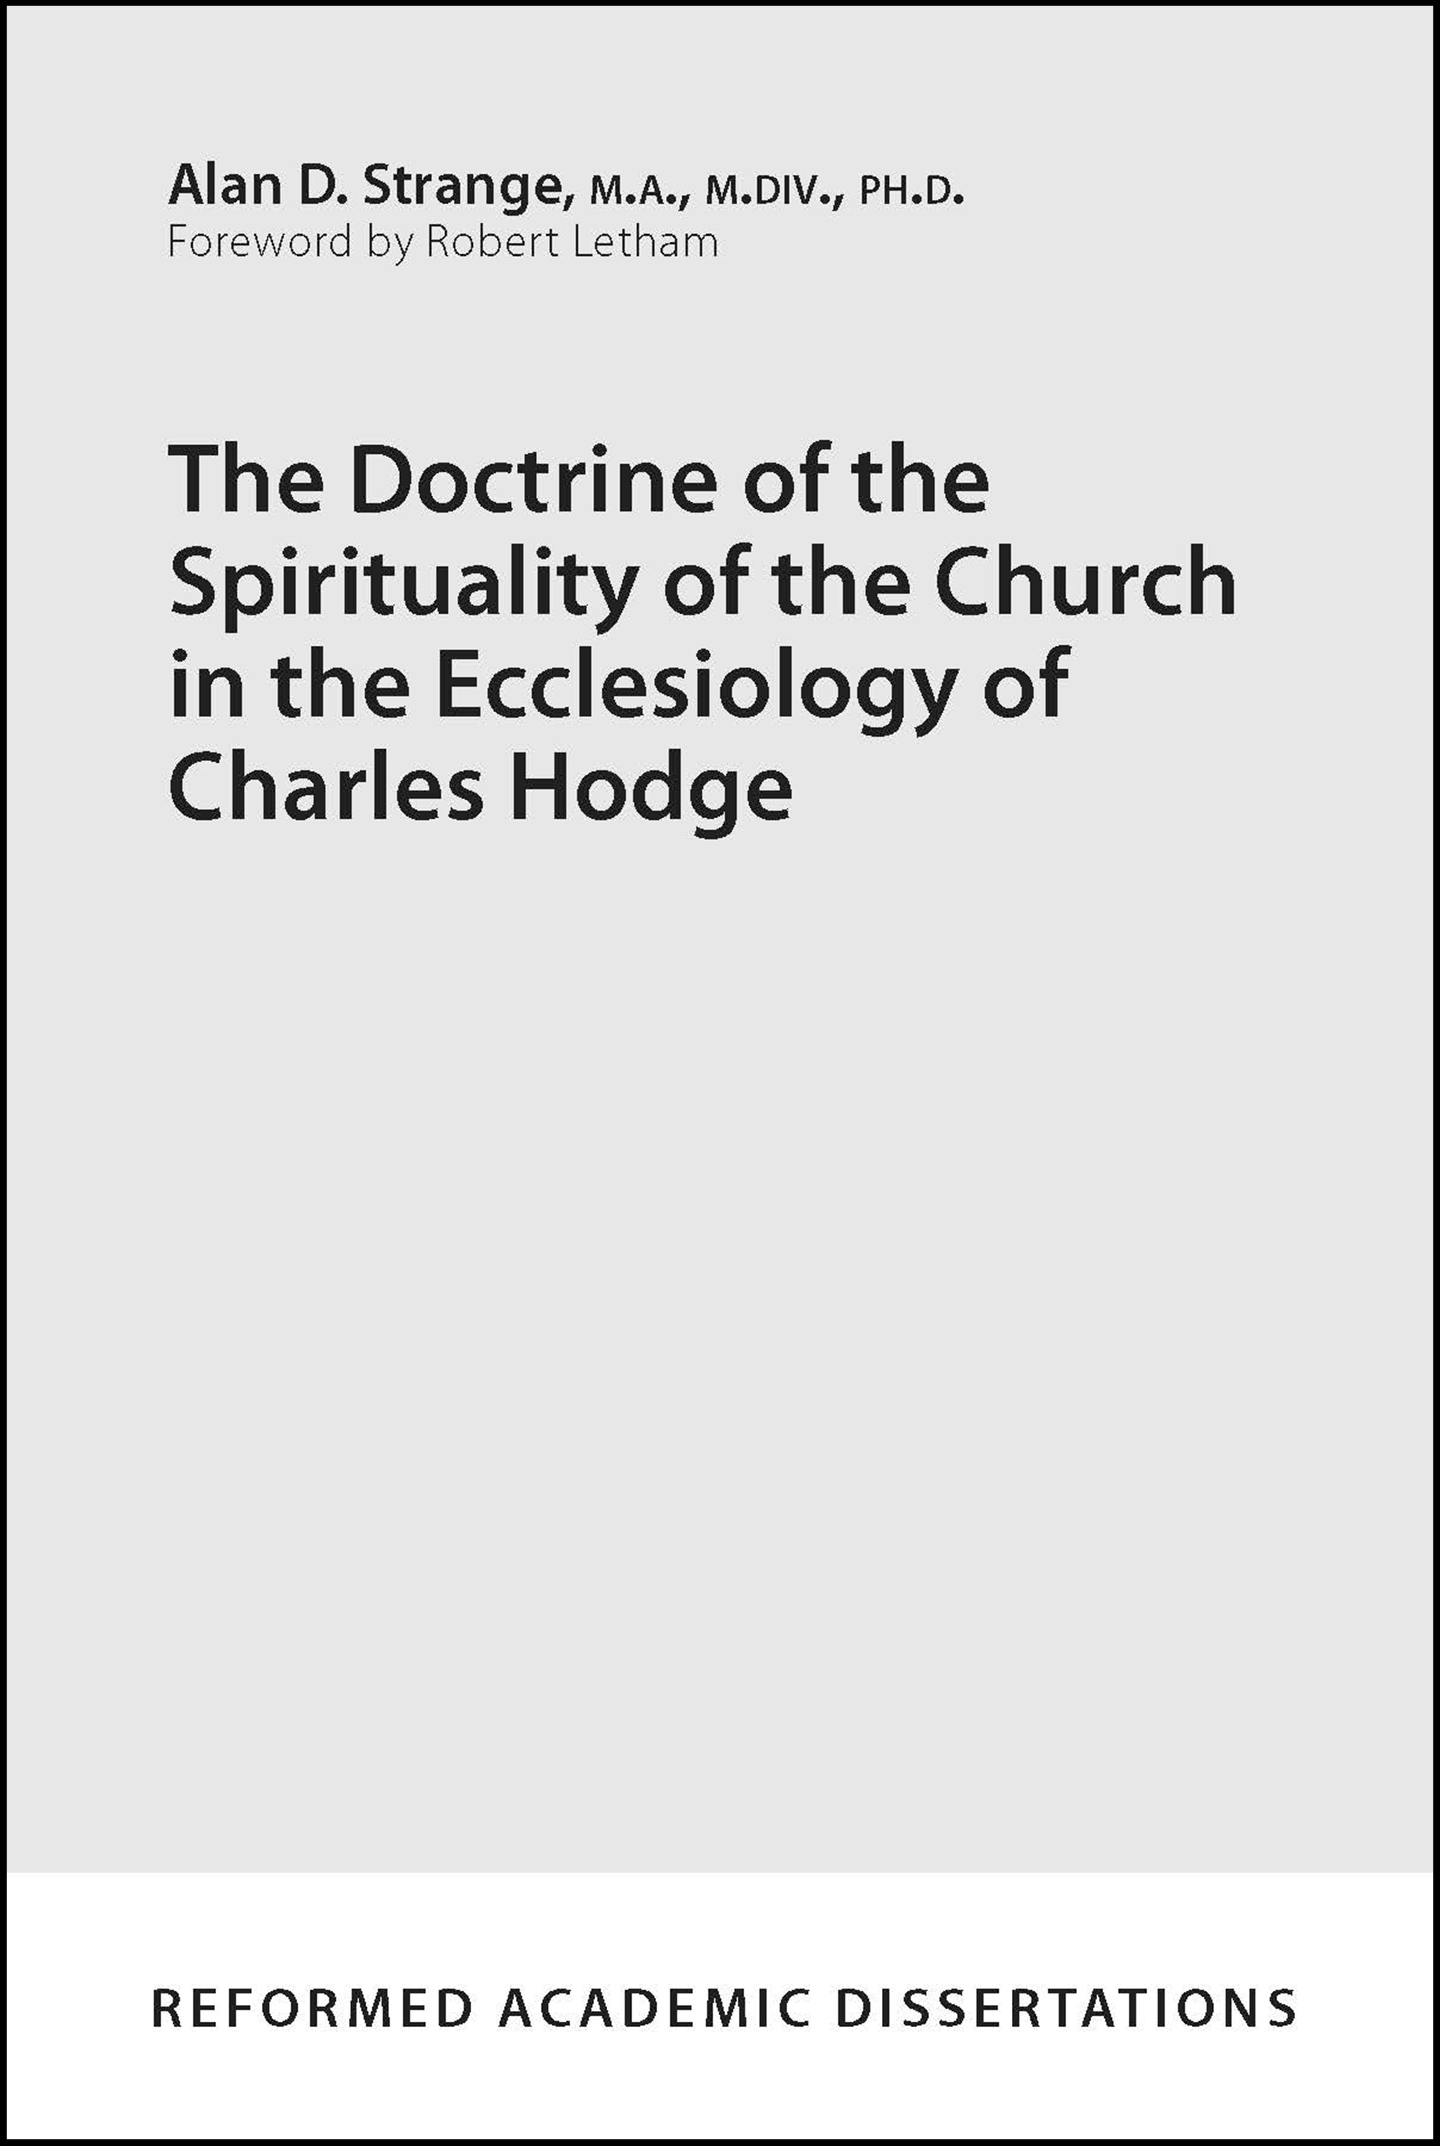 The Doctrine of the Spirituality